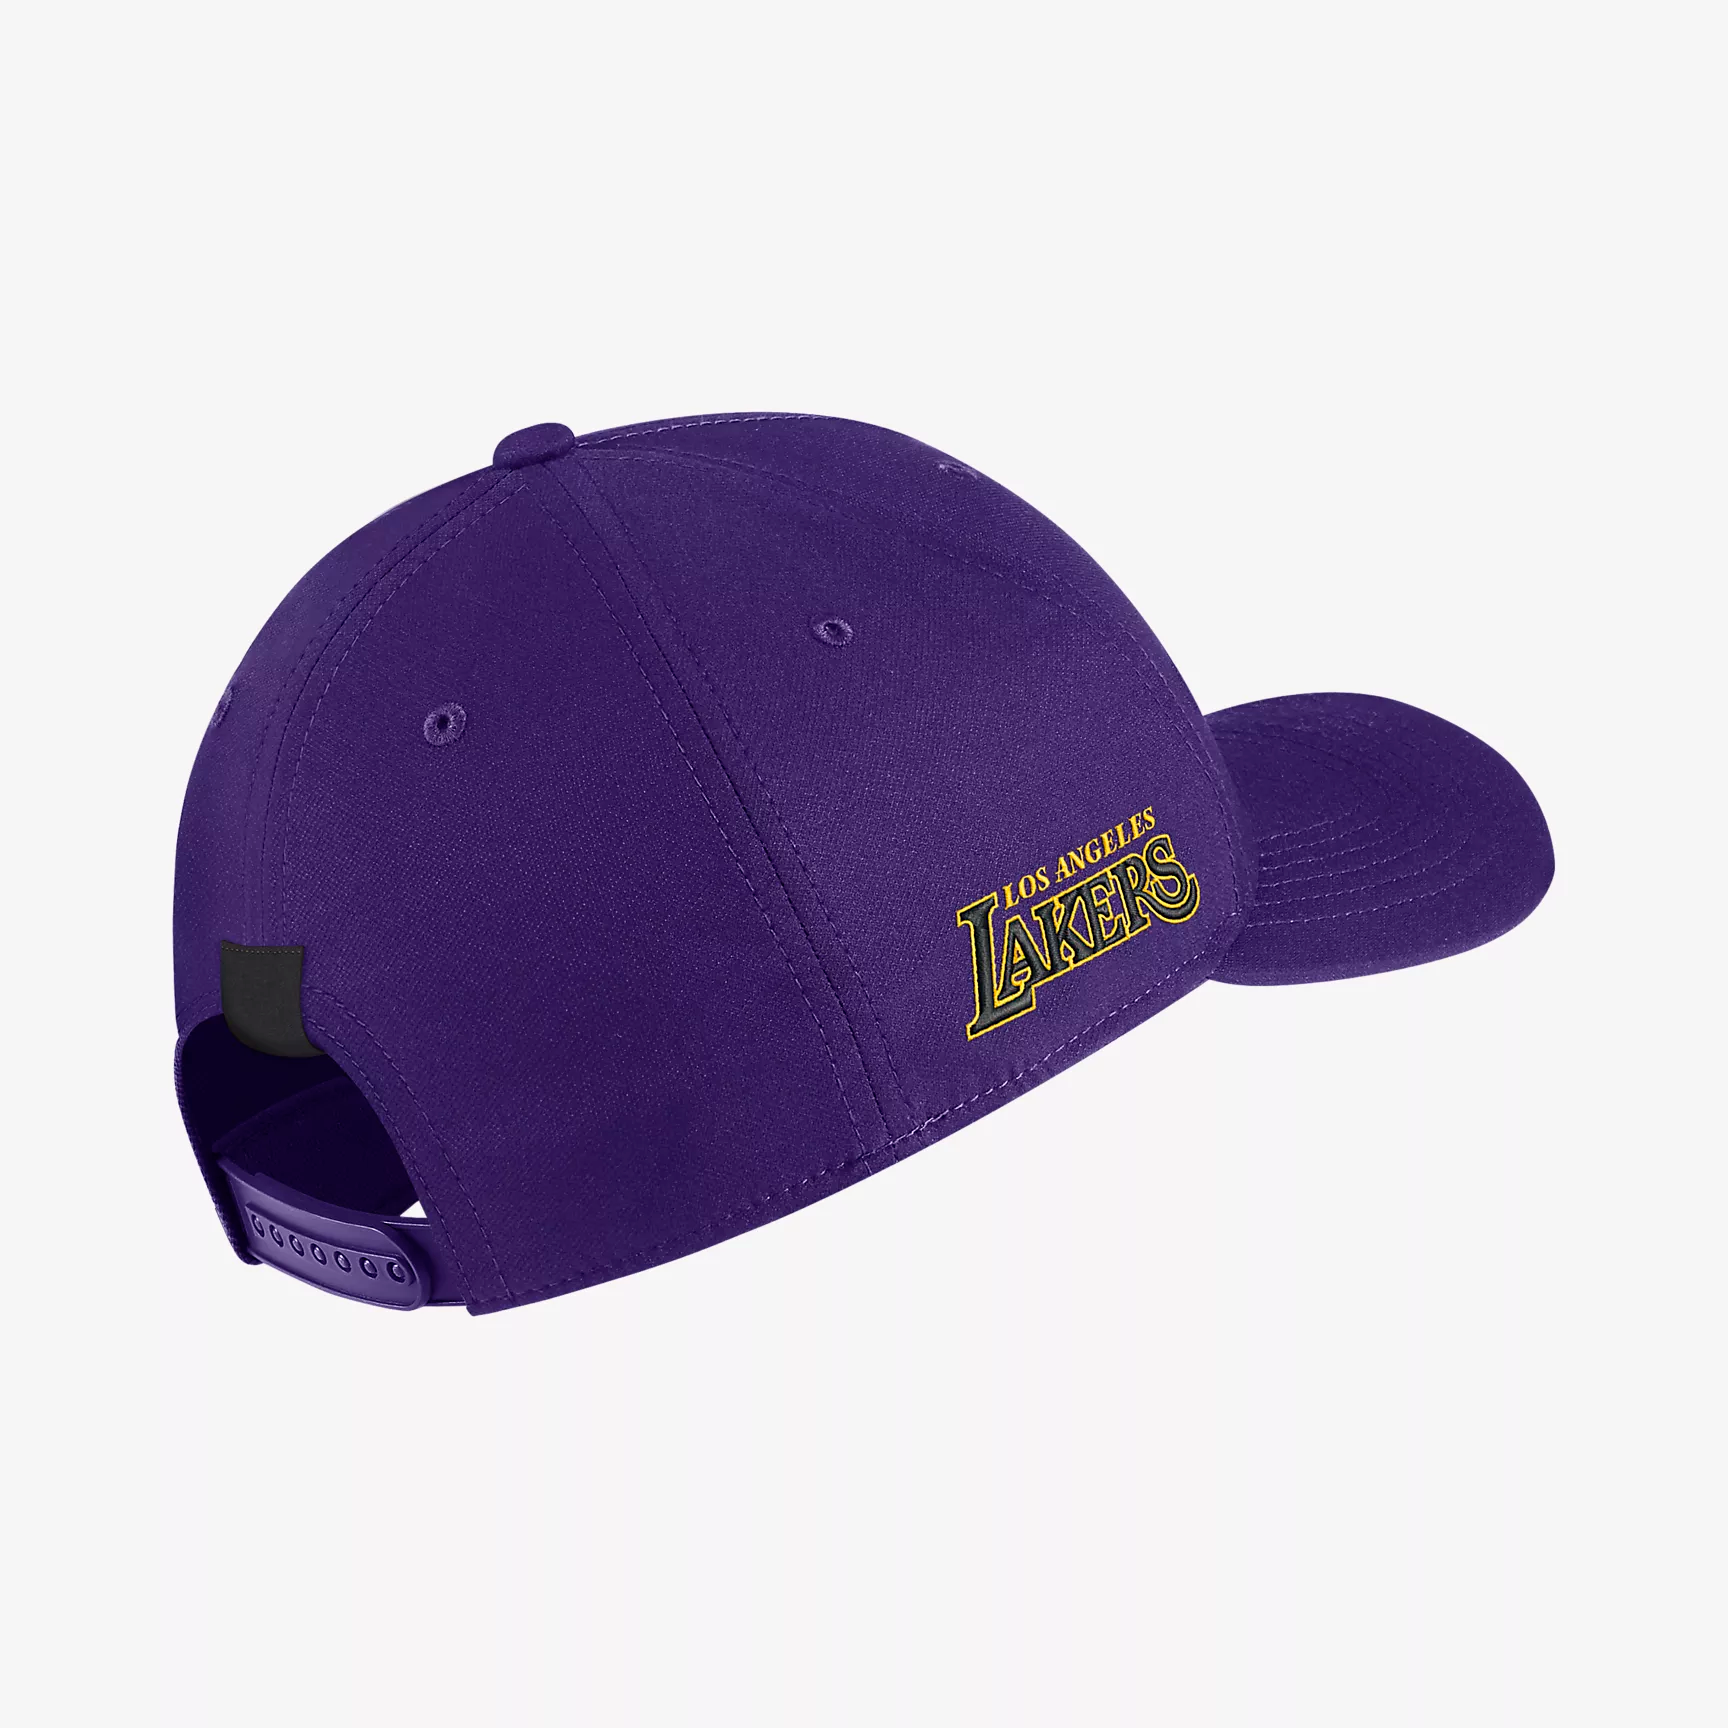 d44e7e1cb6887e 50% OFF the Nike Los Angeles Lakers Classic99 Hat — Sneaker Shouts